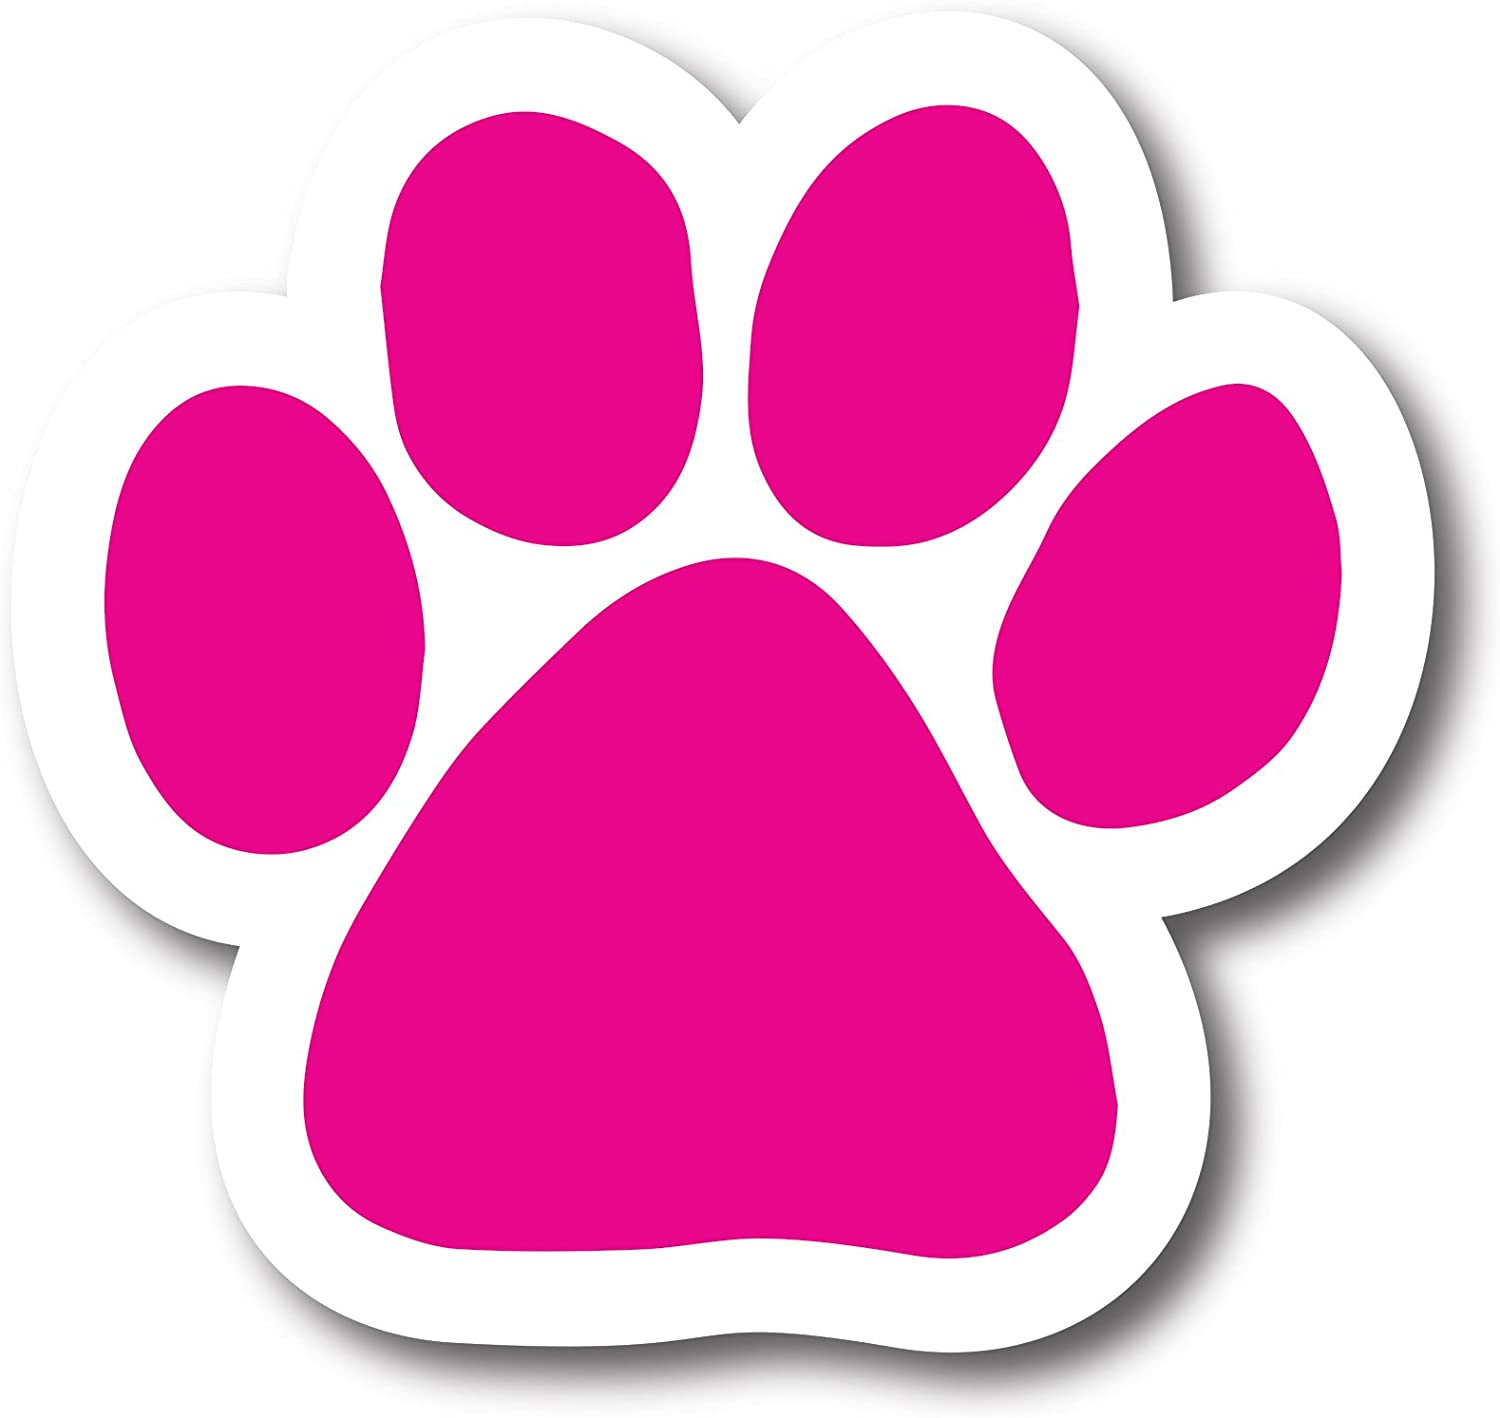 Magnet Me Up Blank Pink Pawprint Car Magnet - 2x7 Paw Print Auto Truck Decal Magnet